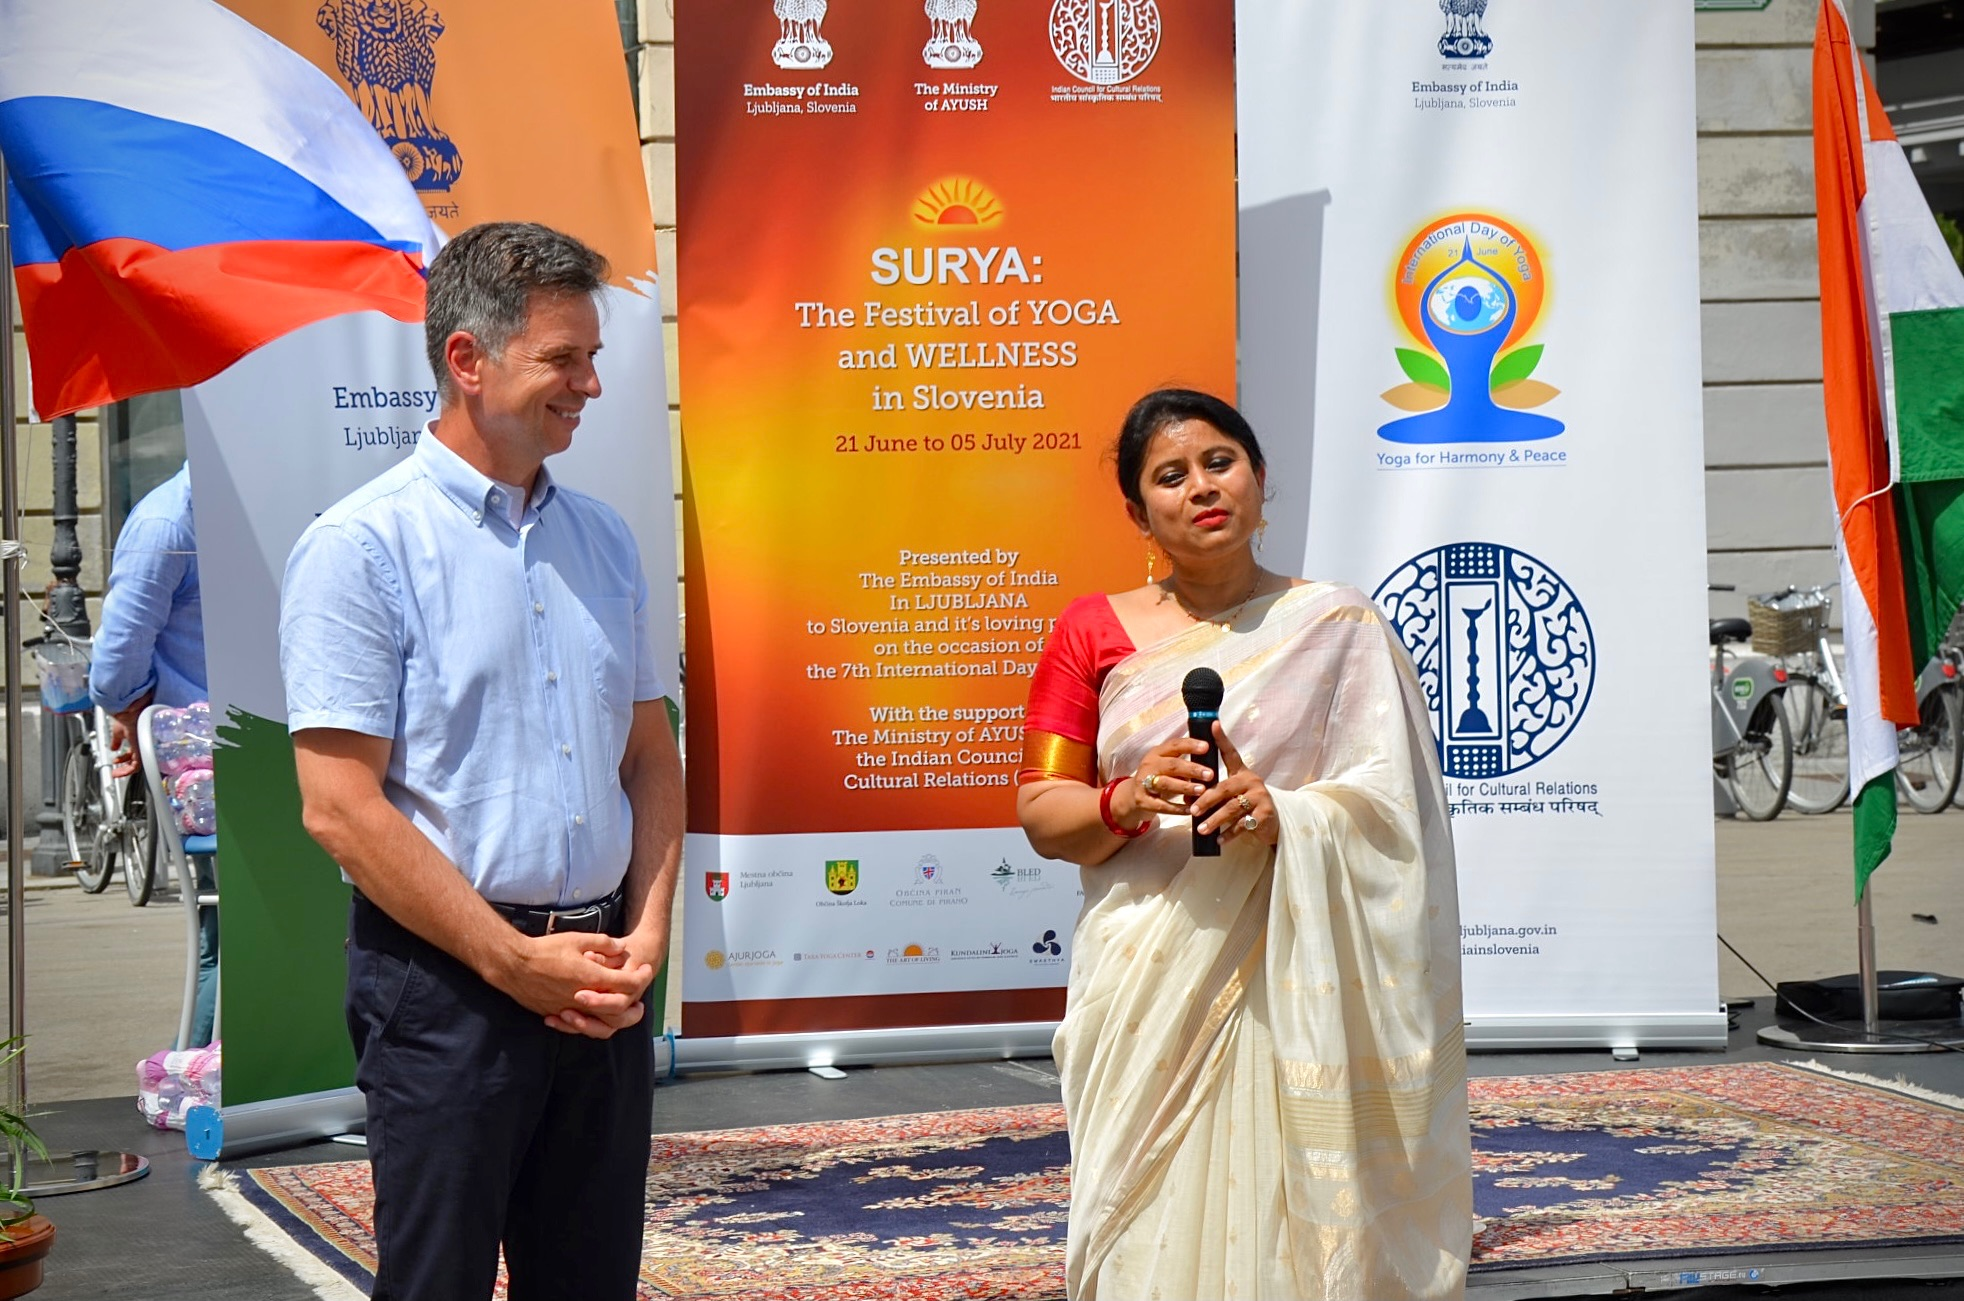 1st edition of Surya Festival of yoga and wellness in Slovenia from 21 June 2021 to 5 July 2021